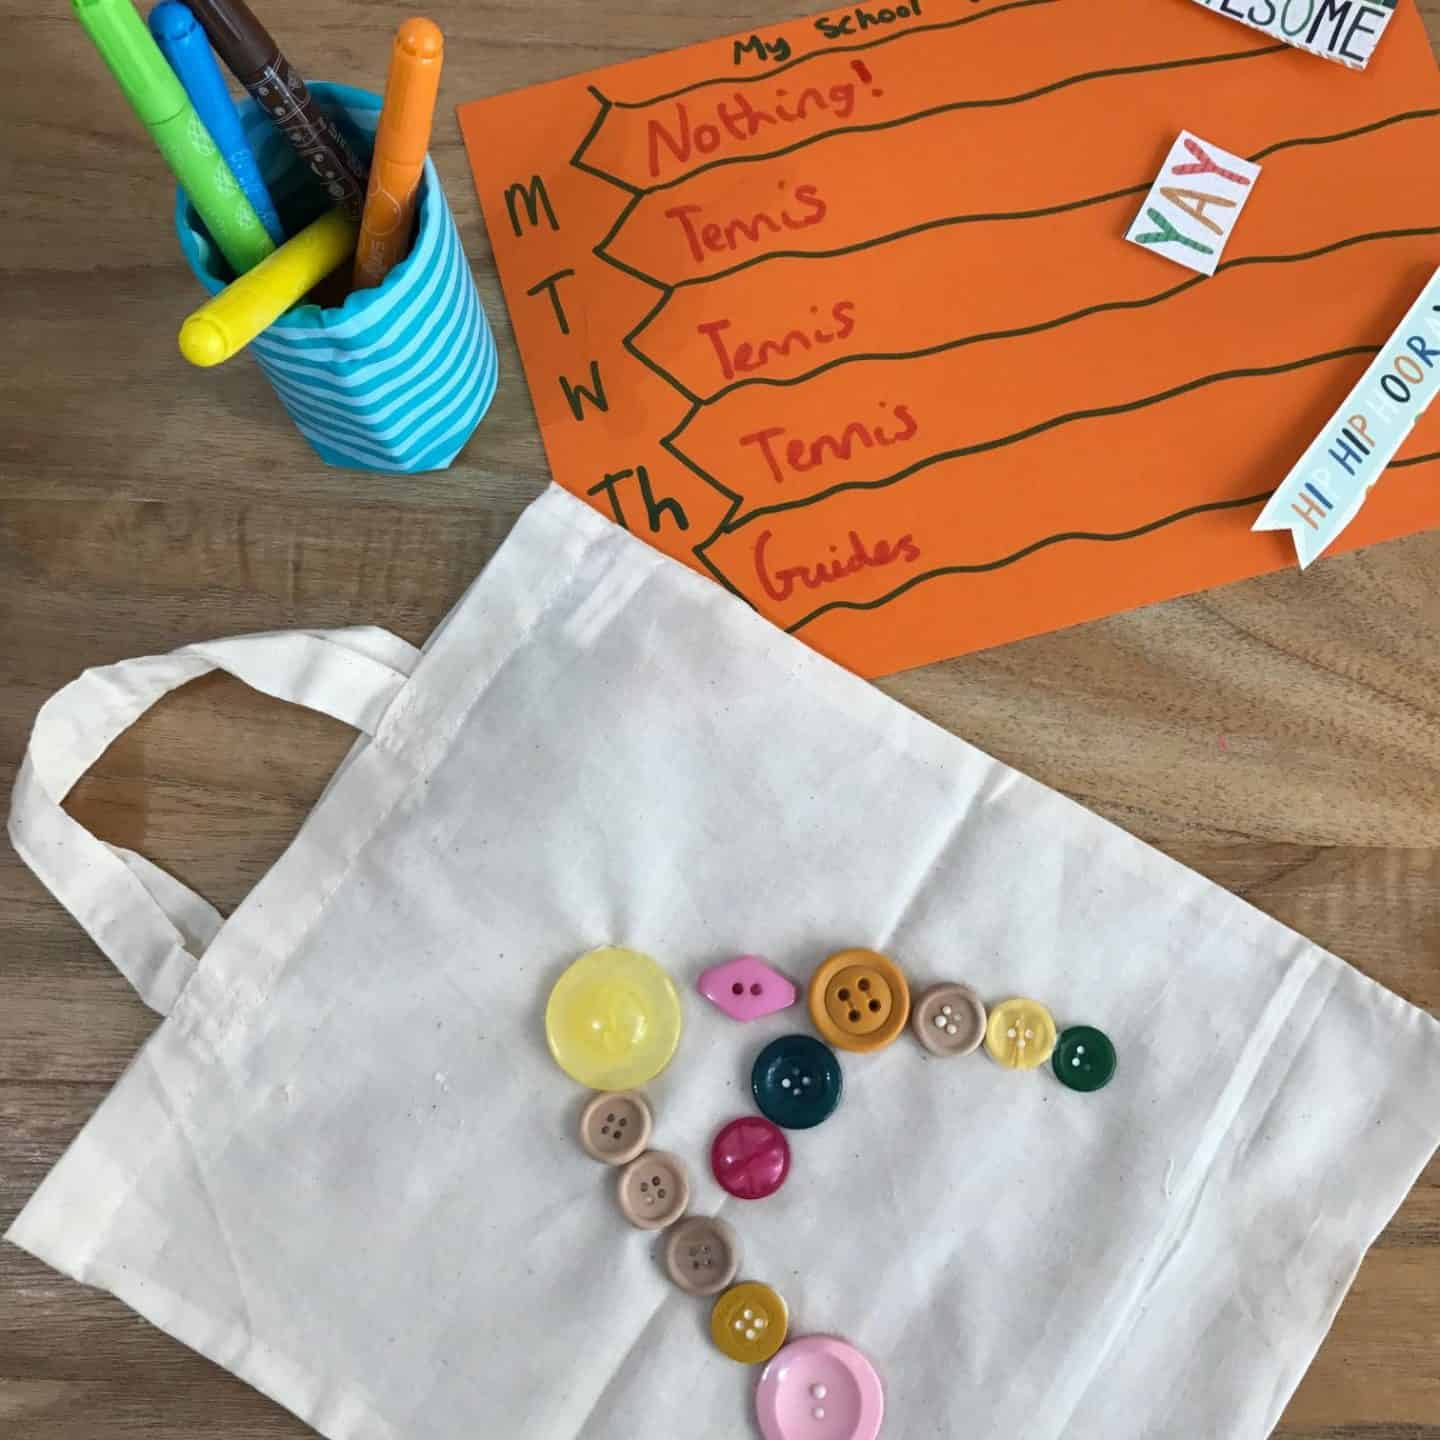 3 simple back to school crafts